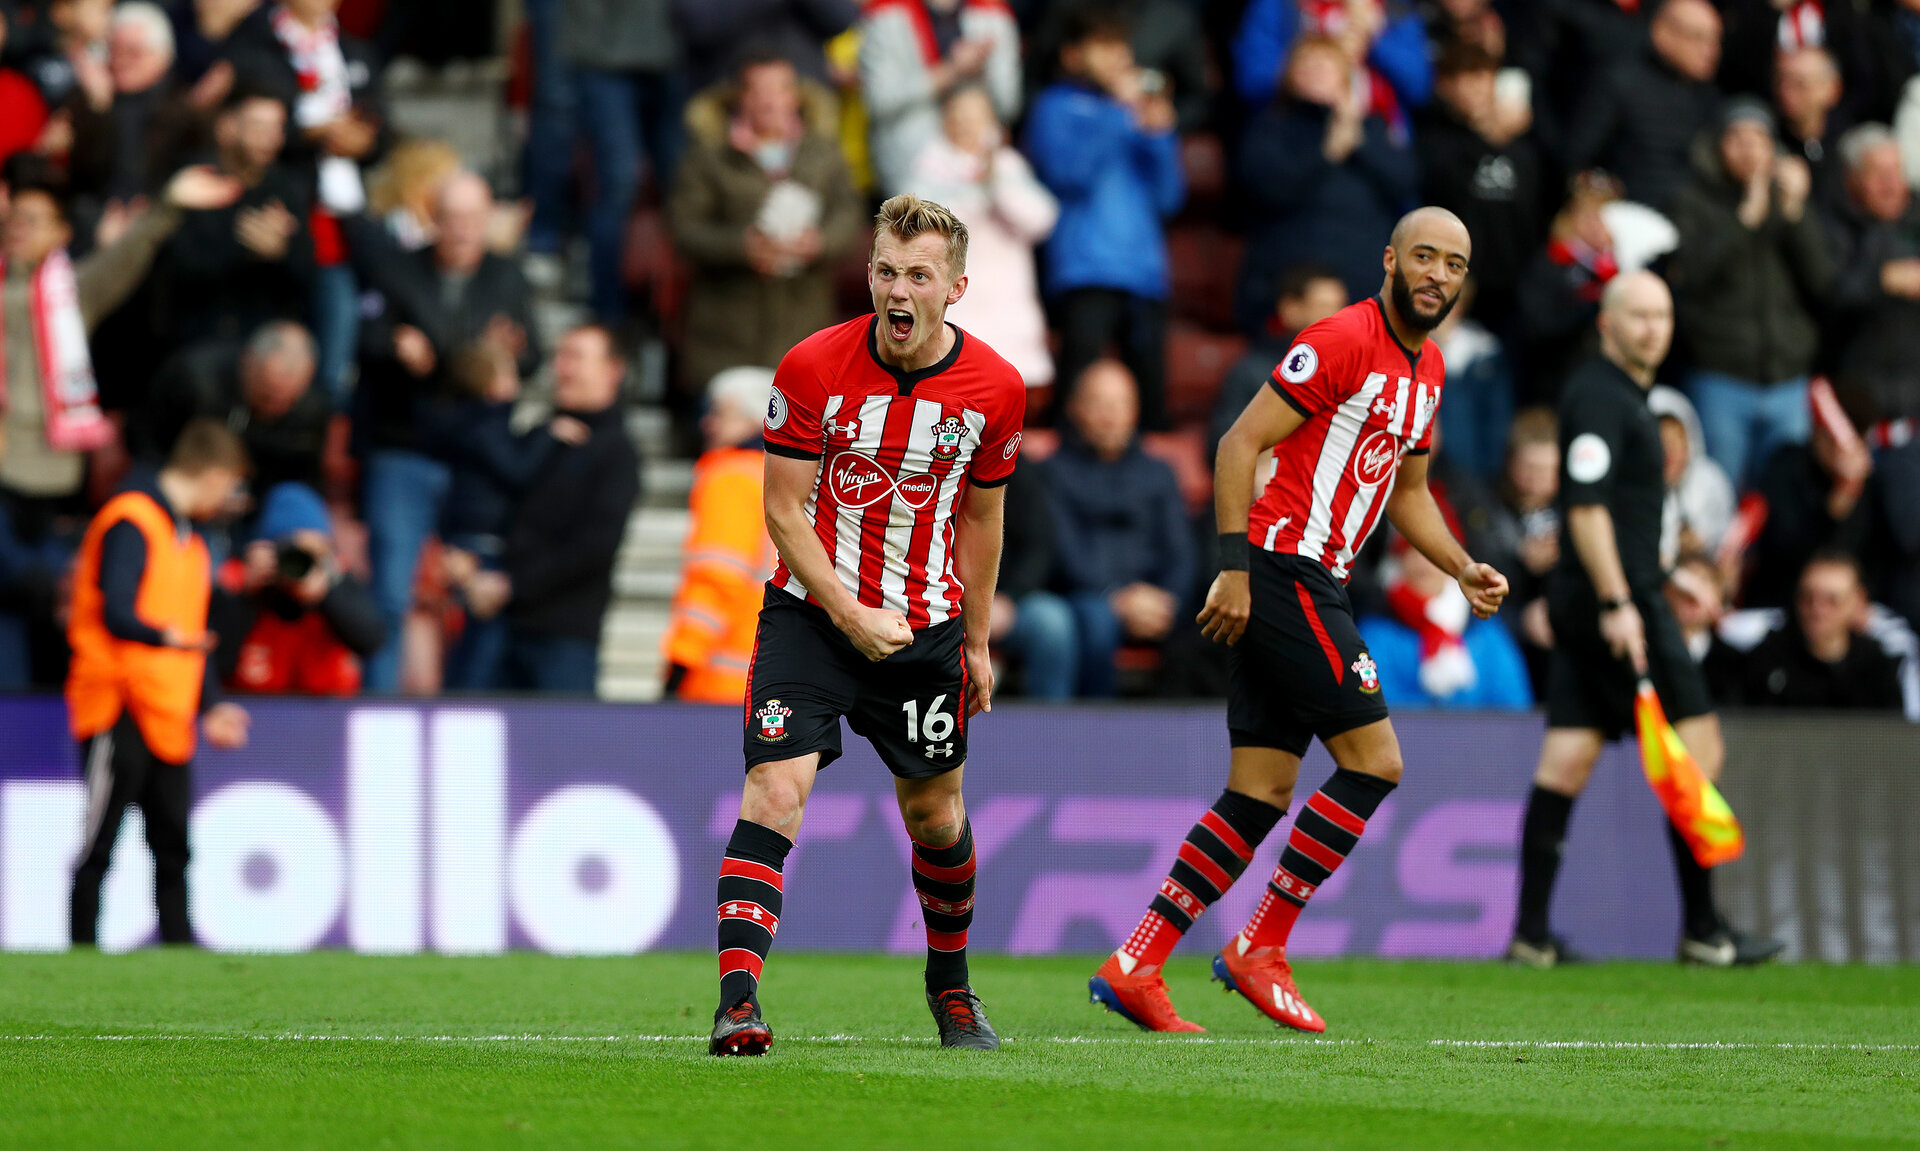 SOUTHAMPTON, ENGLAND - MARCH 09: James Ward-Prowse of Southampton celebrates after putting his side 2-1 upduring the Premier League match between Southampton FC and Tottenham Hotspur at St Mary's Stadium on March 09, 2019 in Southampton, United Kingdom. (Photo by Matt Watson/Southampton FC via Getty Images)